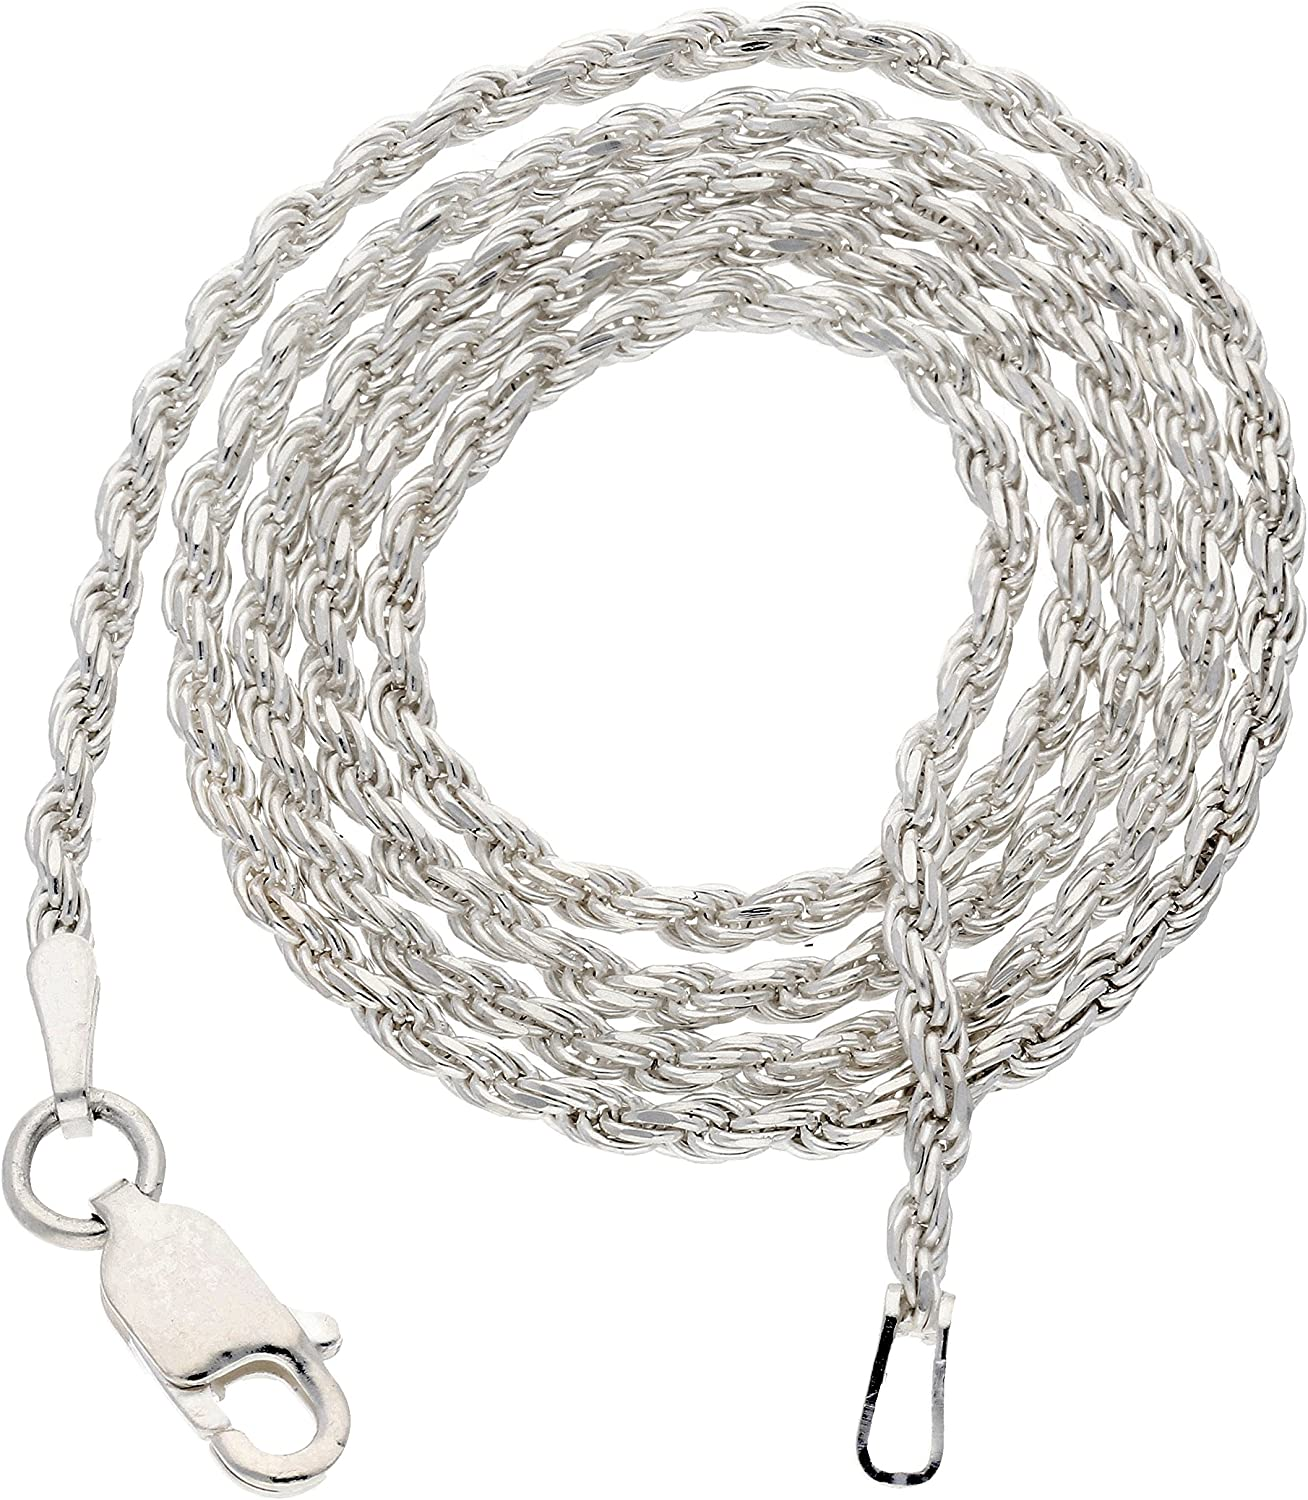 "B00023JPMO 2mm Sterling Silver Diamond-Cut Rope Chain Necklace(Lengths 14"",16"",18"",20"",22"",24"",26"",28"",30"",32"",34"",36"") 918N%2BilP1vL"